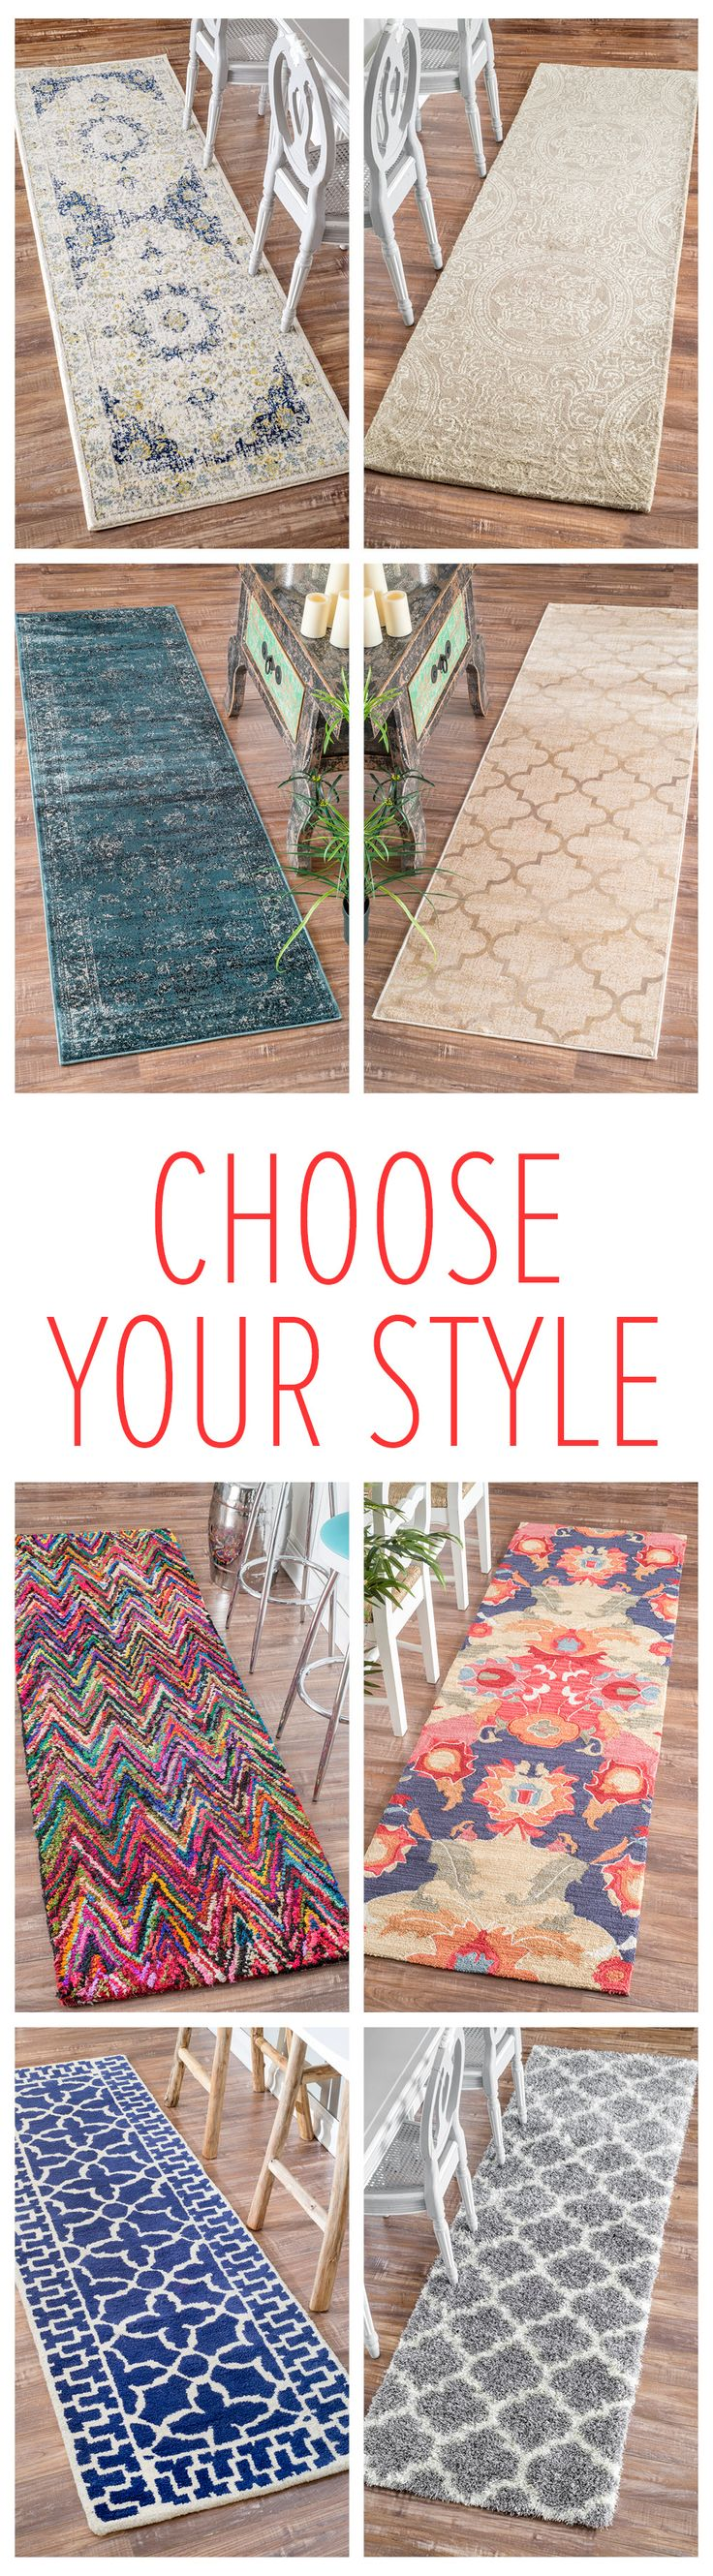 214 best rugs images on Pinterest